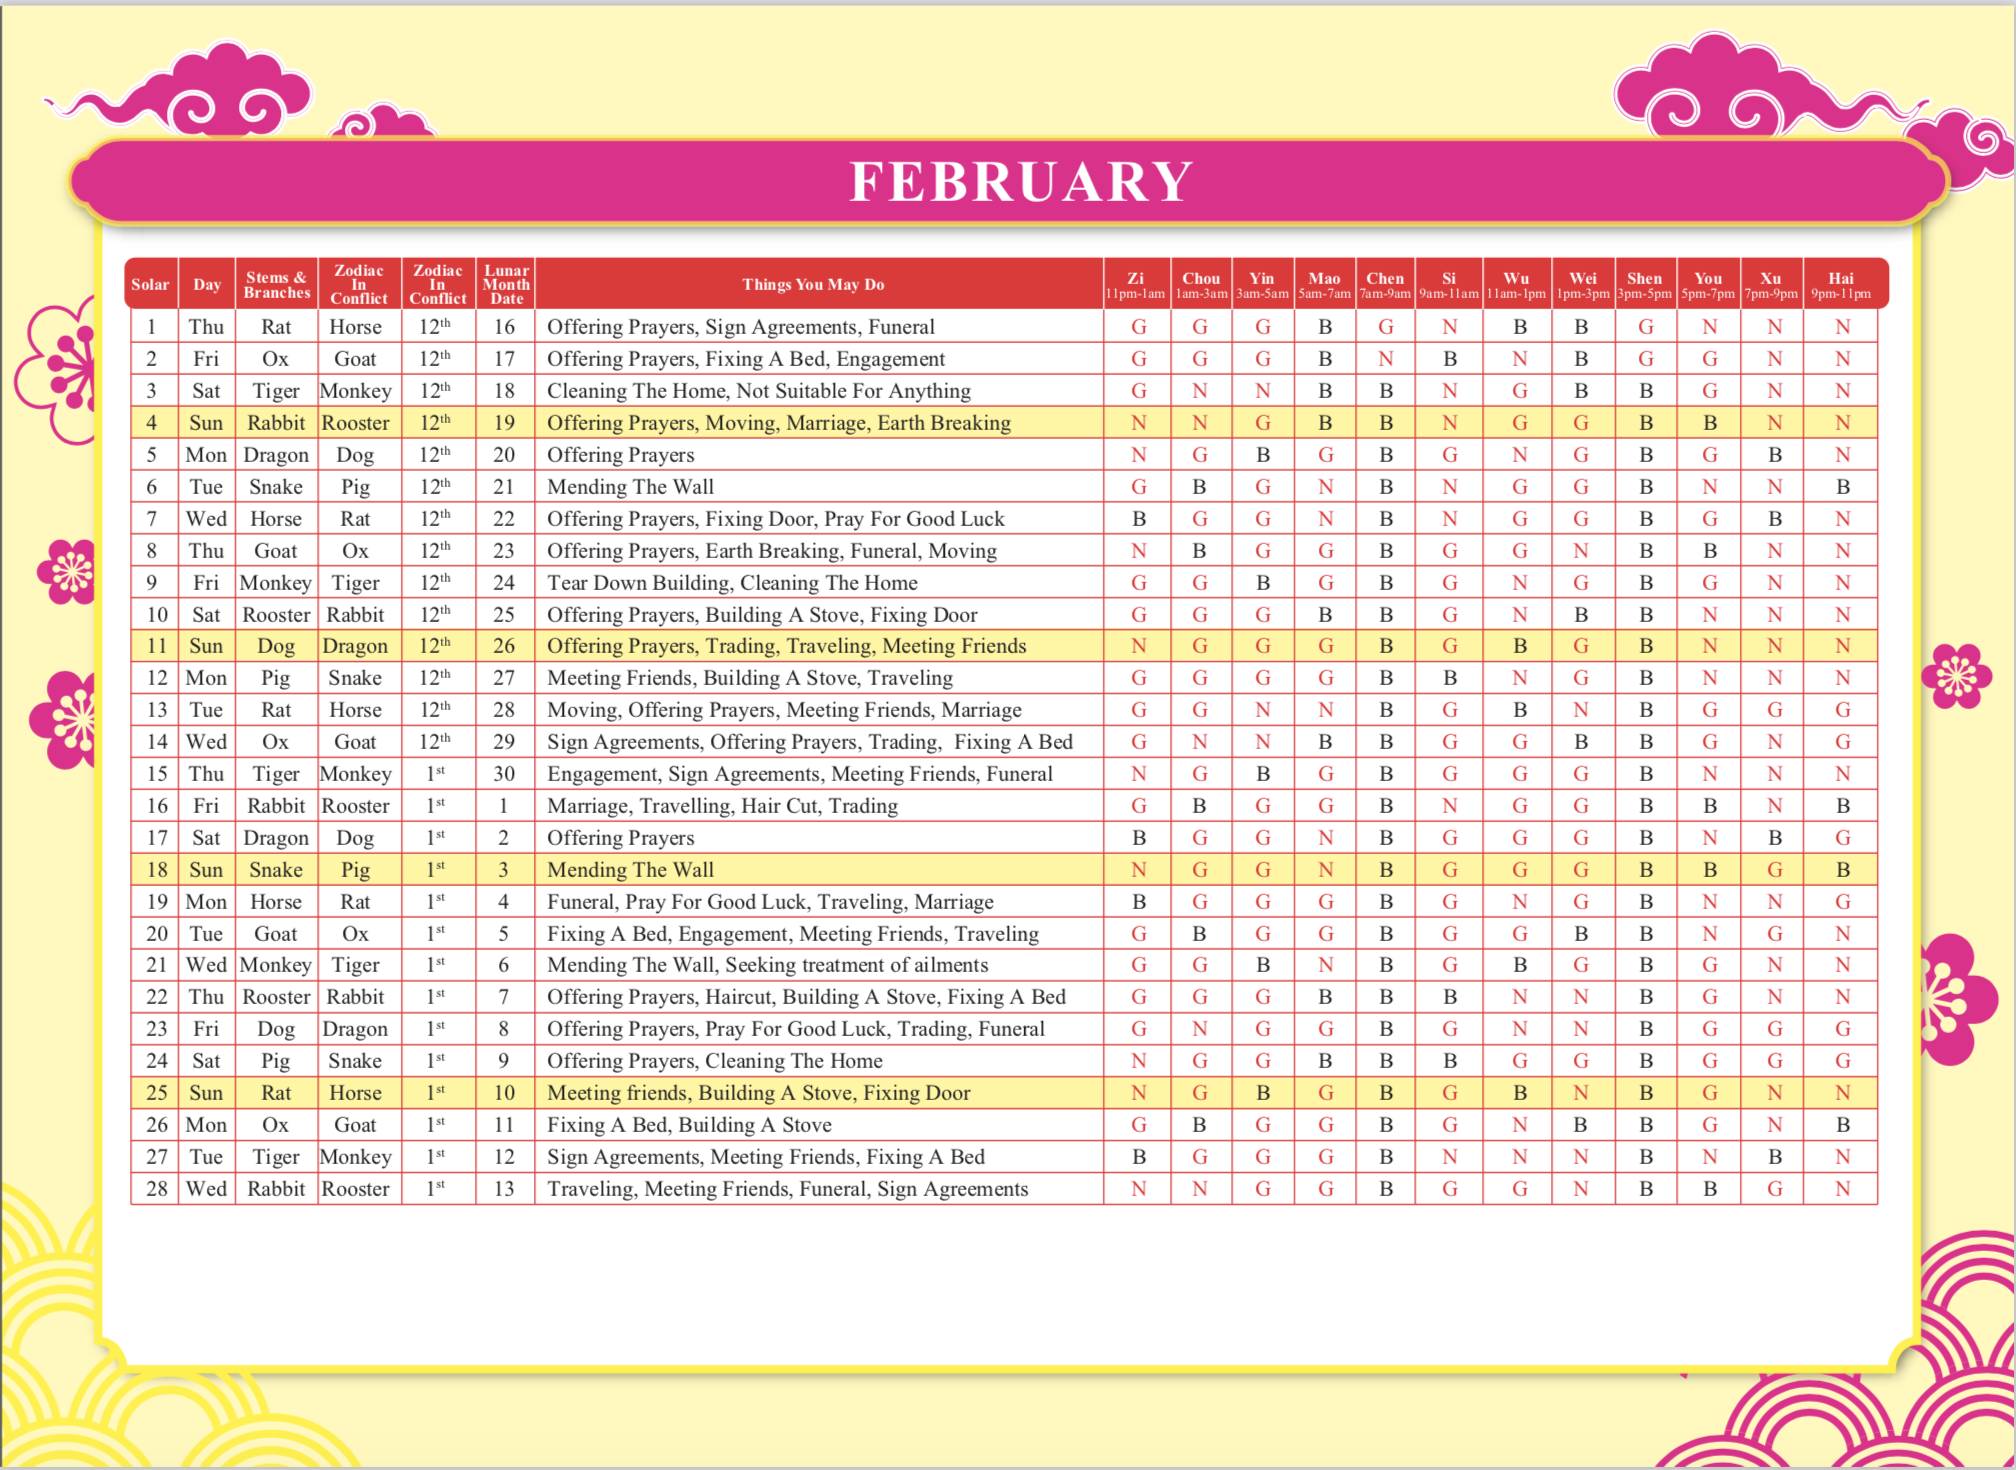 TYN Chinese Calendar Feb 2018